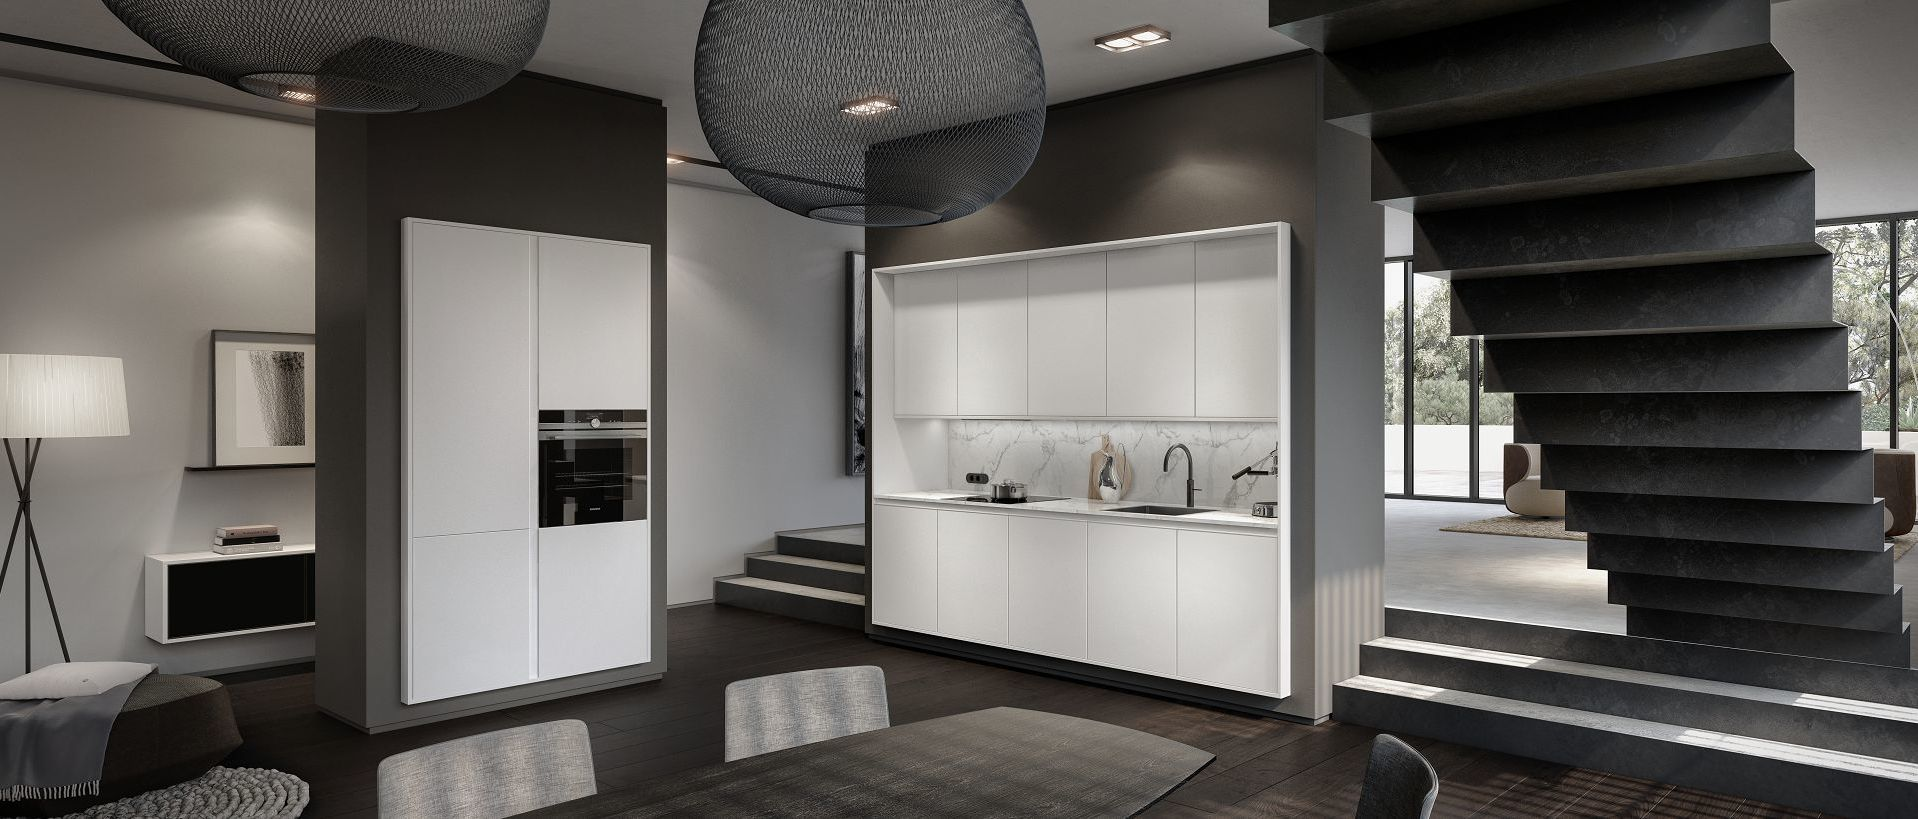 Küche Siematic | Siematic Pure Collection Die Neue Geometrie Der Kuche